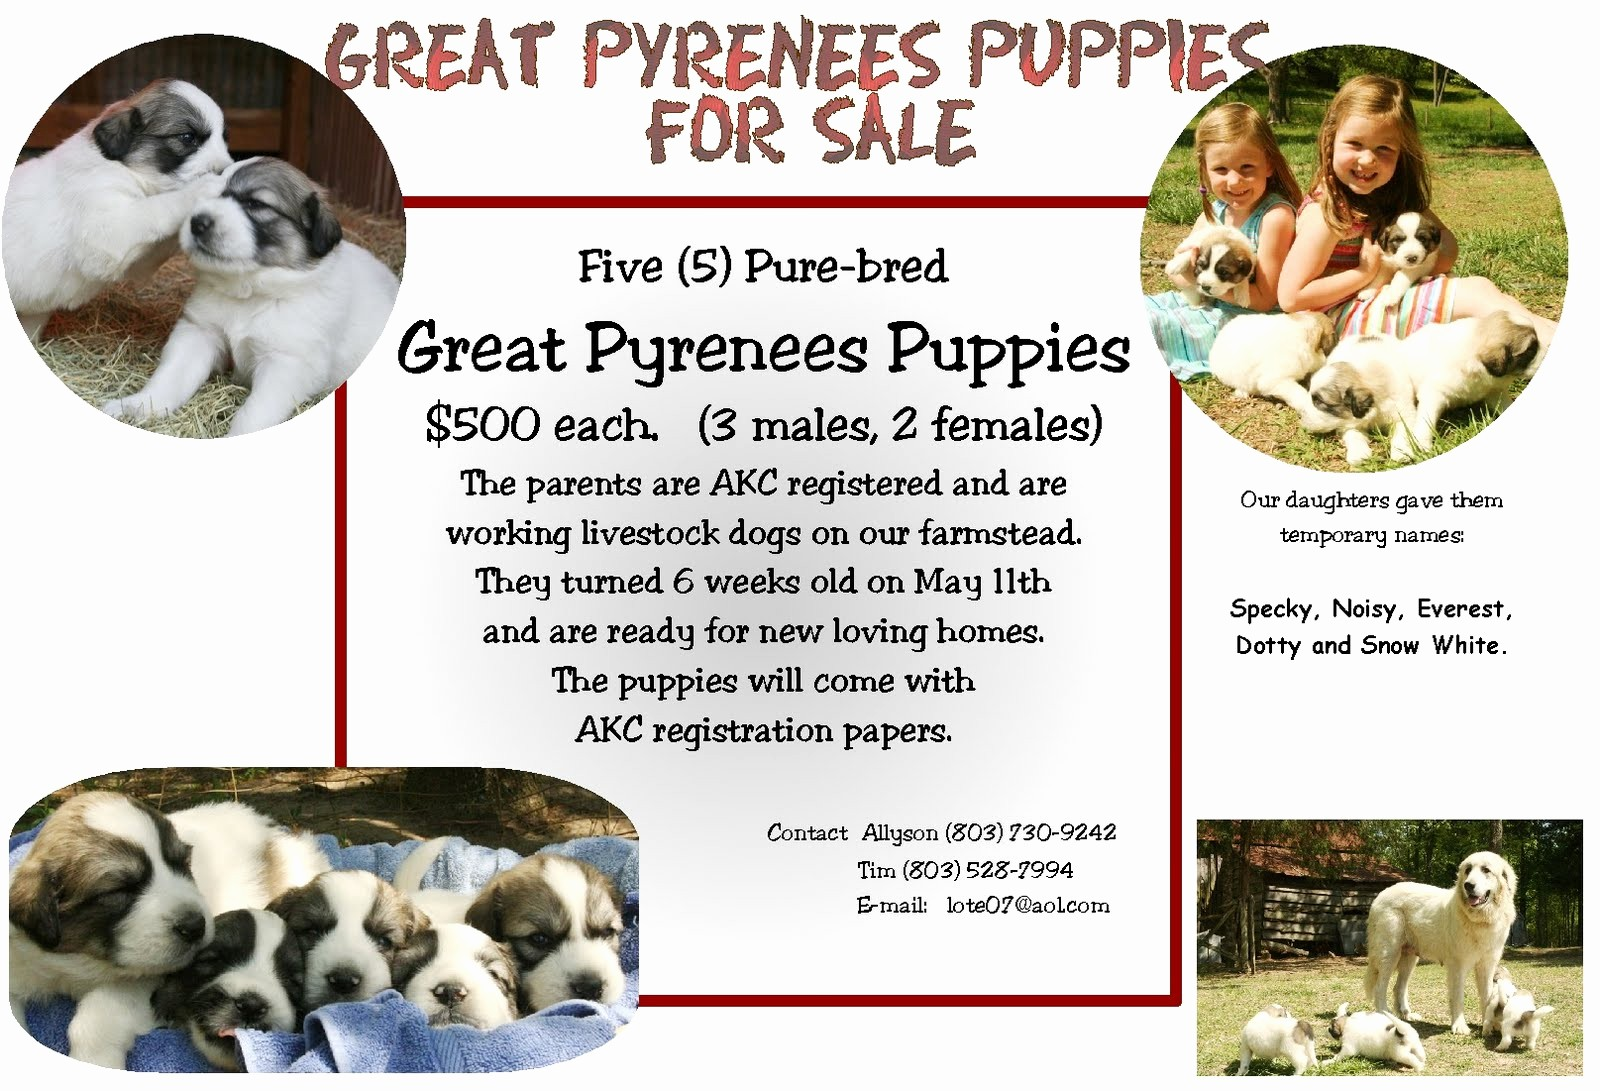 Puppy for Sale Flyer Templates New Till We there Puppies for Sale